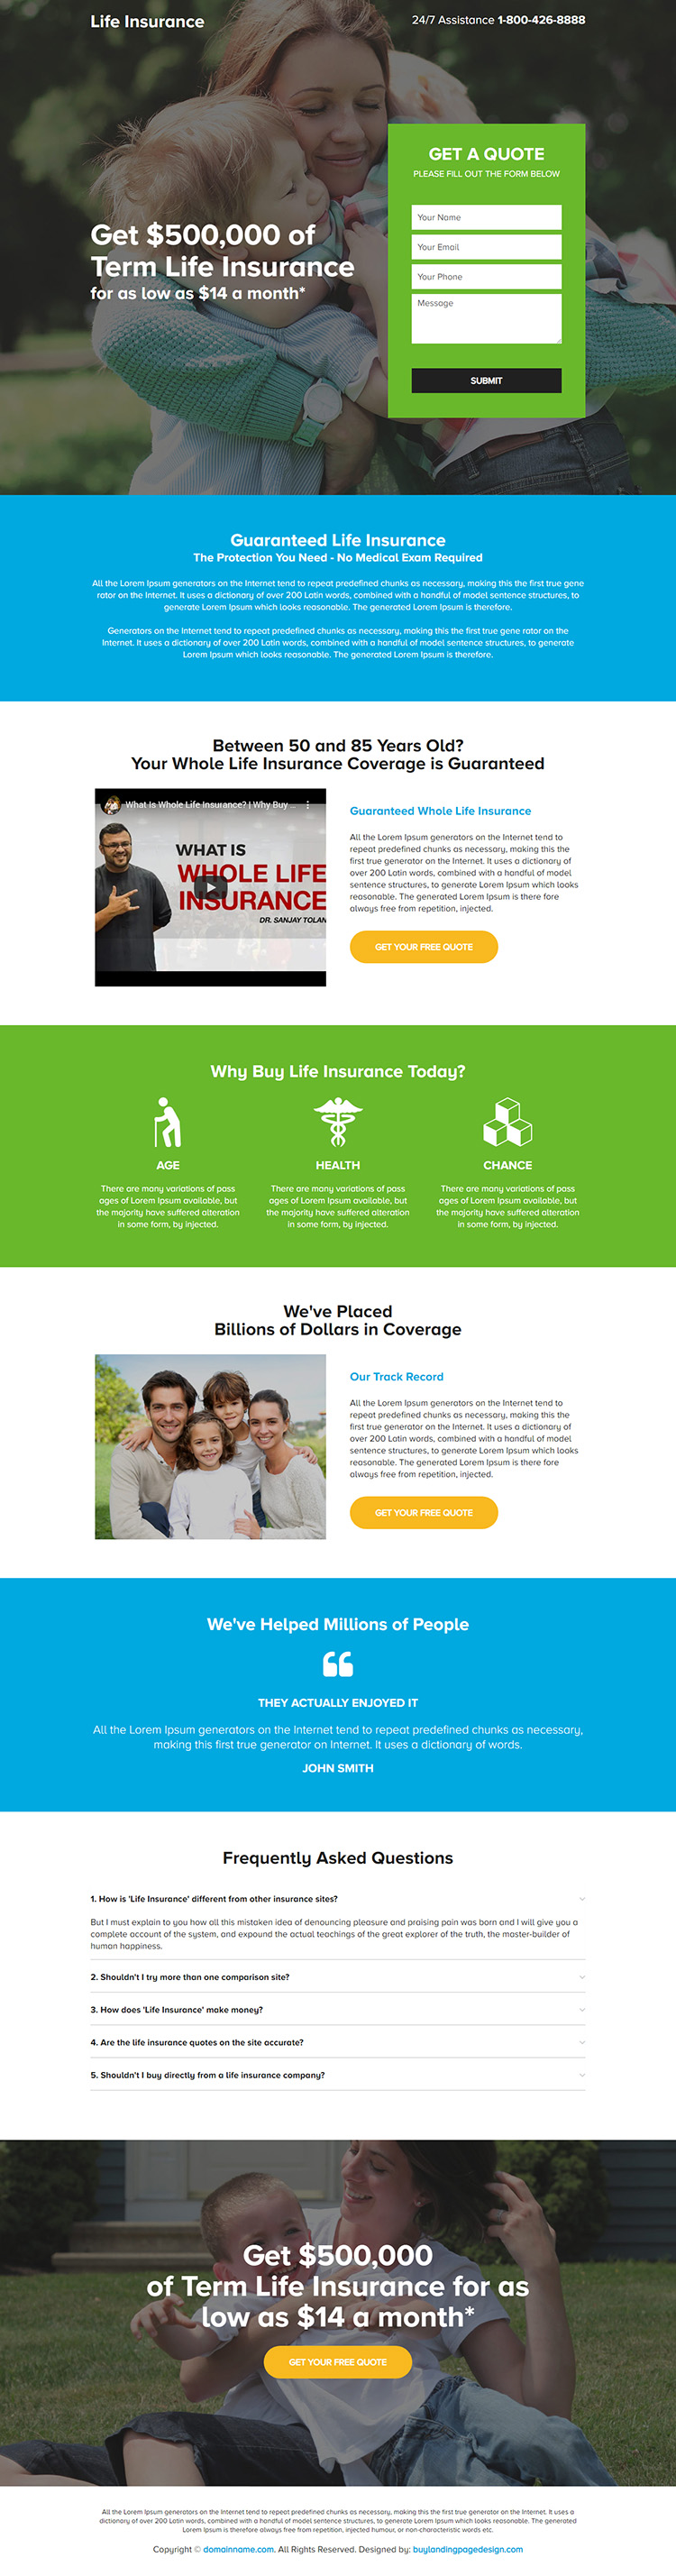 term life insurance lead capture responsive landing page design